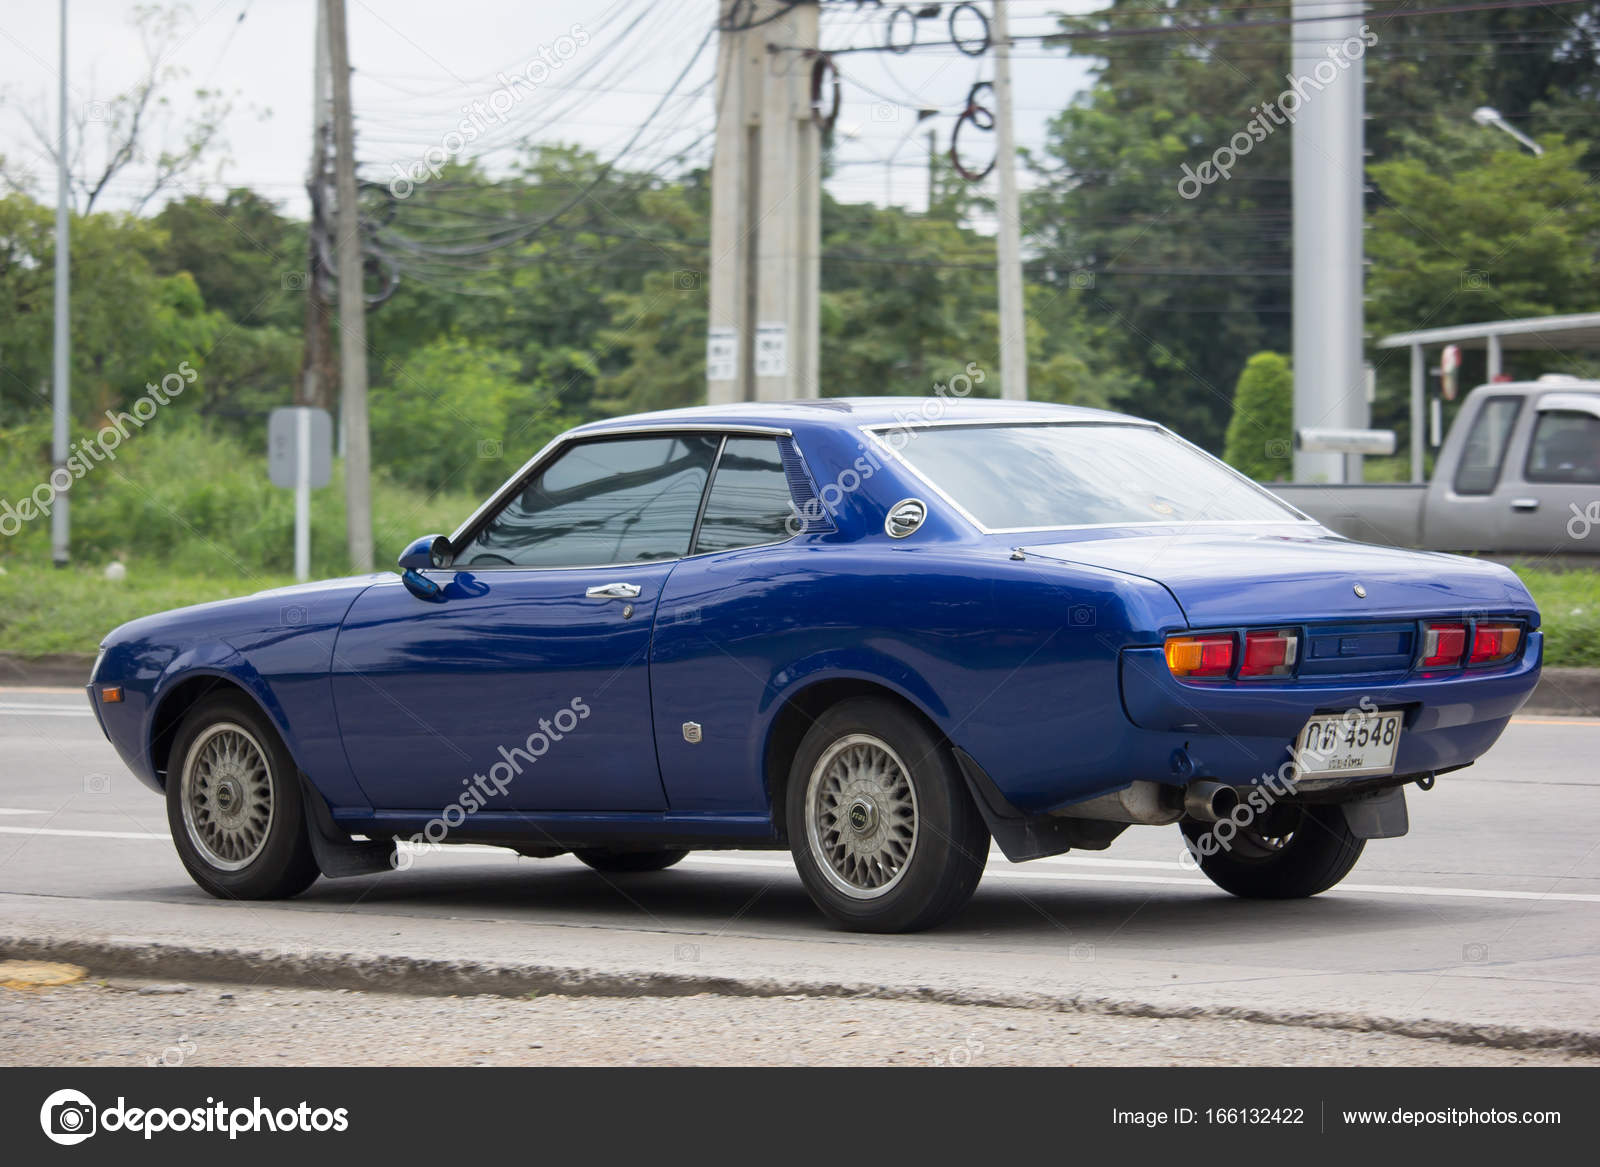 CHIANG MAI, THAILAND   AUGUST 29 2017: Private Old Car,Toyota Celica TA 22  Coupe LT 1600. Photo At Road No 121 About 8 Km From Downtown Chiangmai,  Thailand.